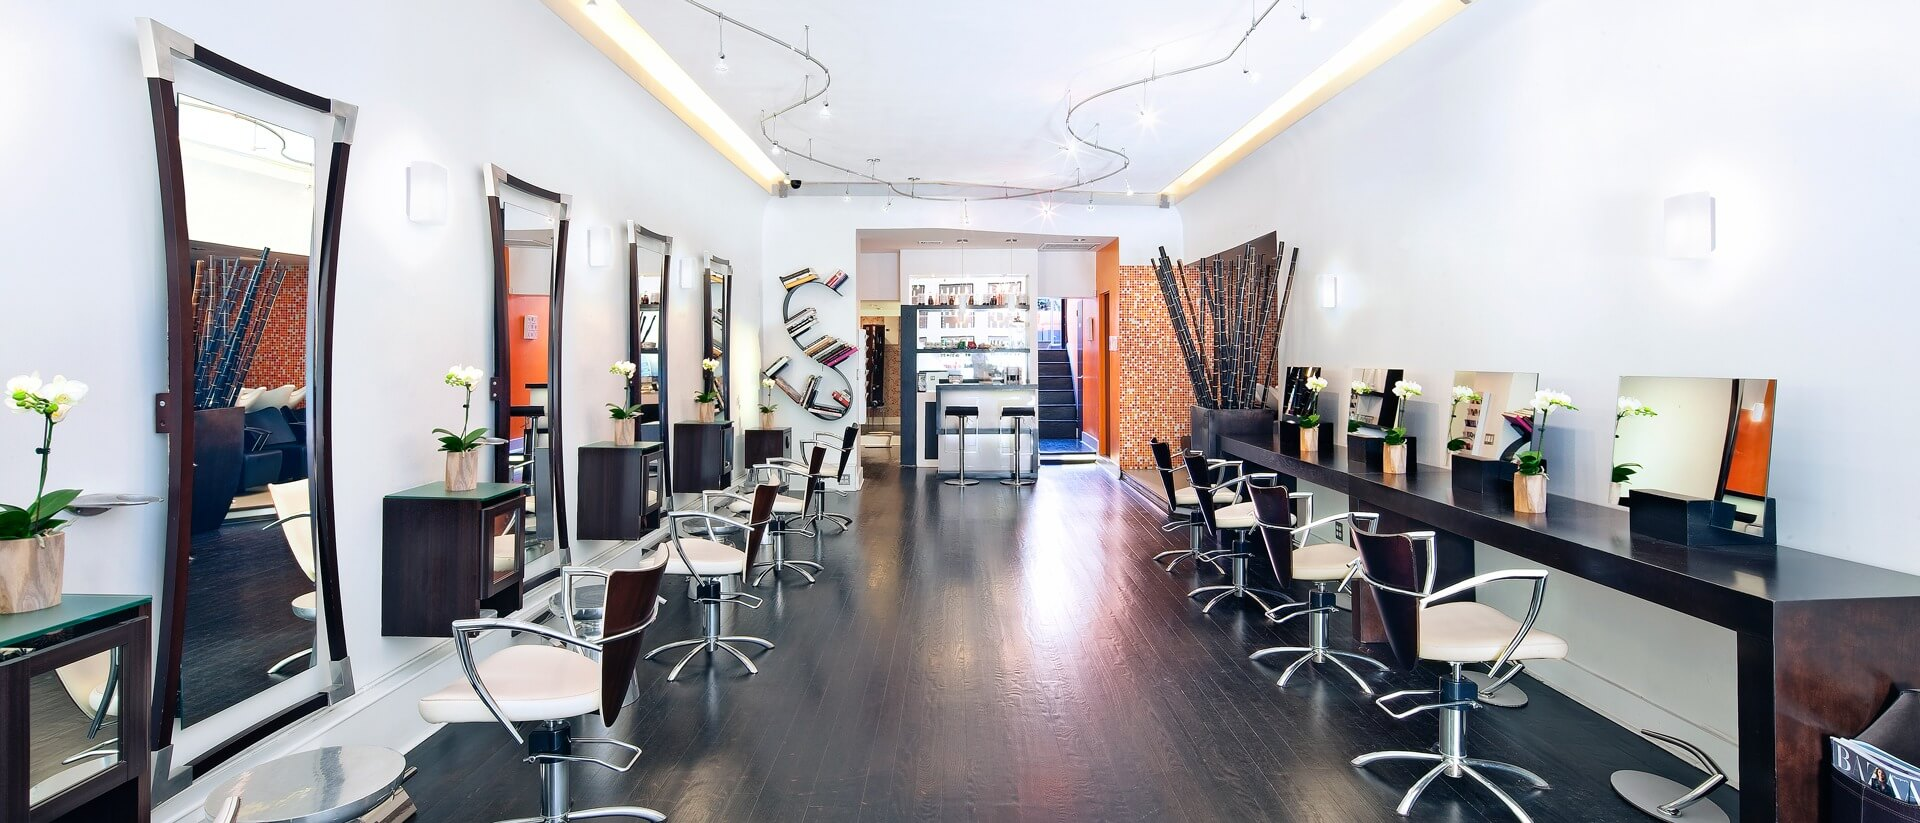 Fabio Scalia Salon Brooklyn New York interior